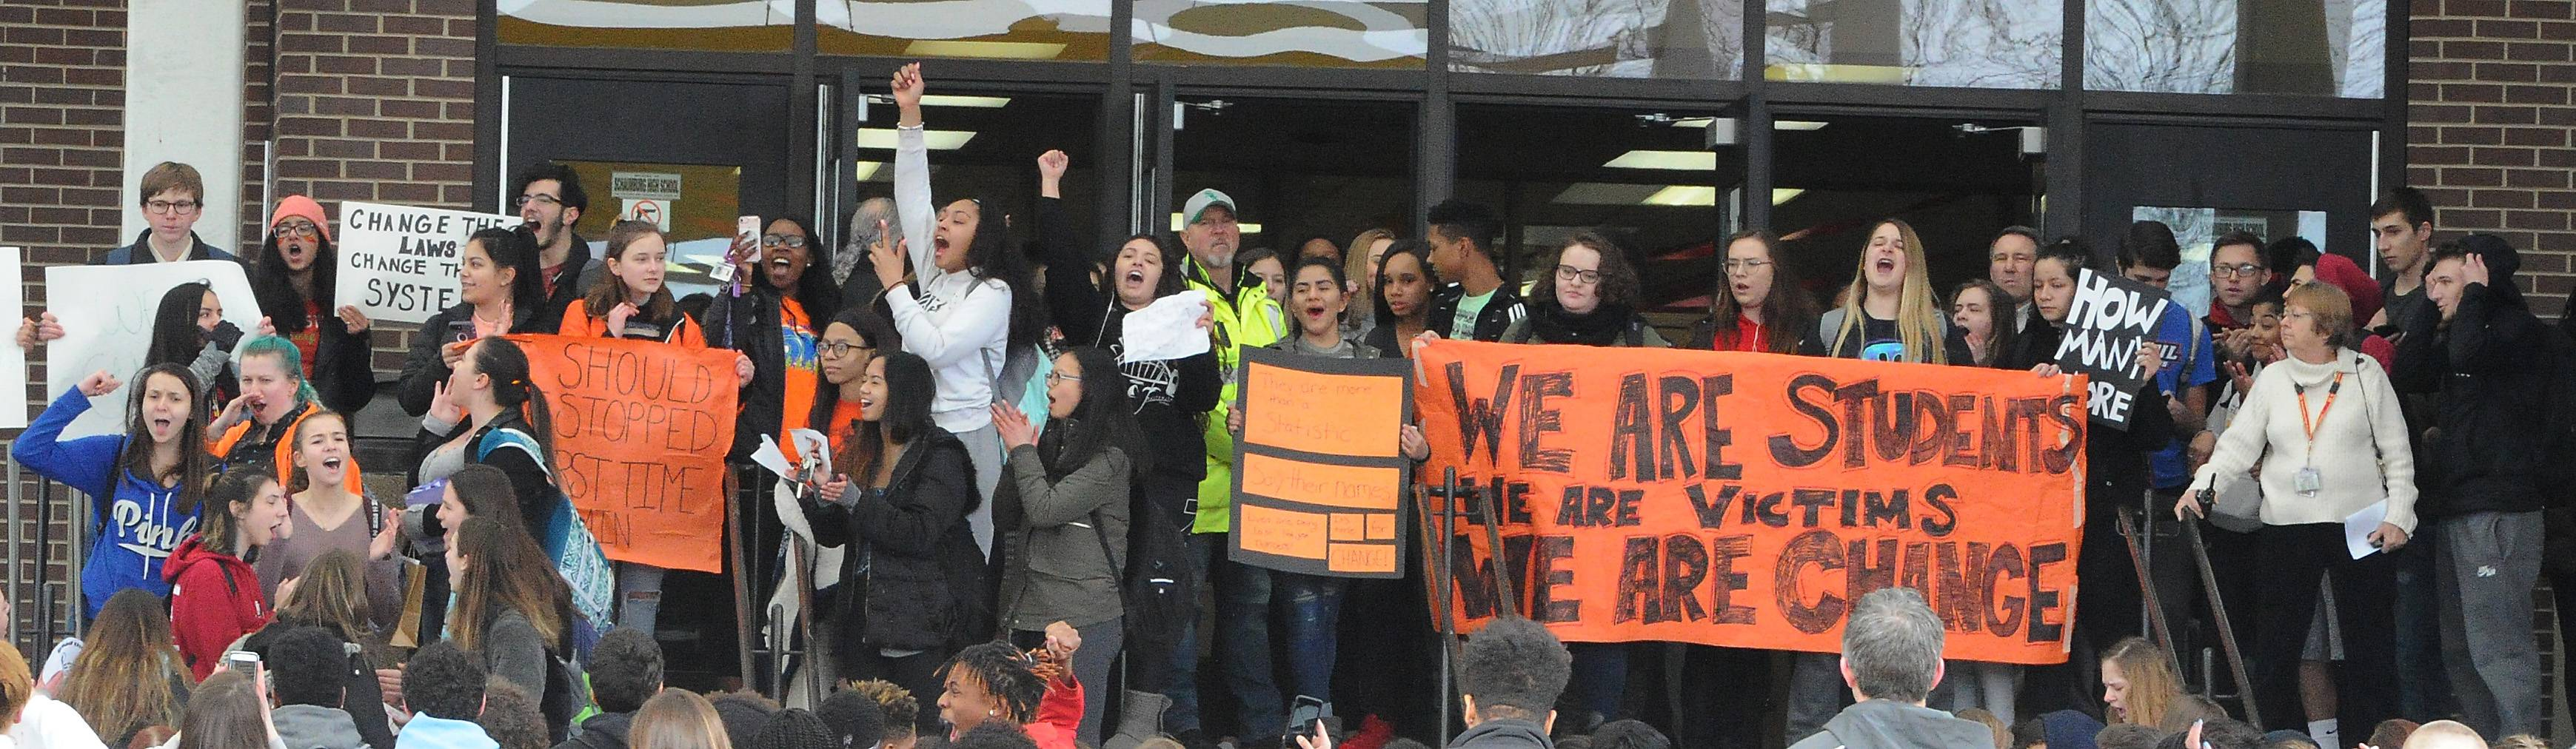 Schaumburg High School students rally in front of the school Wednesday to advocate for more gun control in the wake of 17 students and staff members being killed last week at a Florida high school.